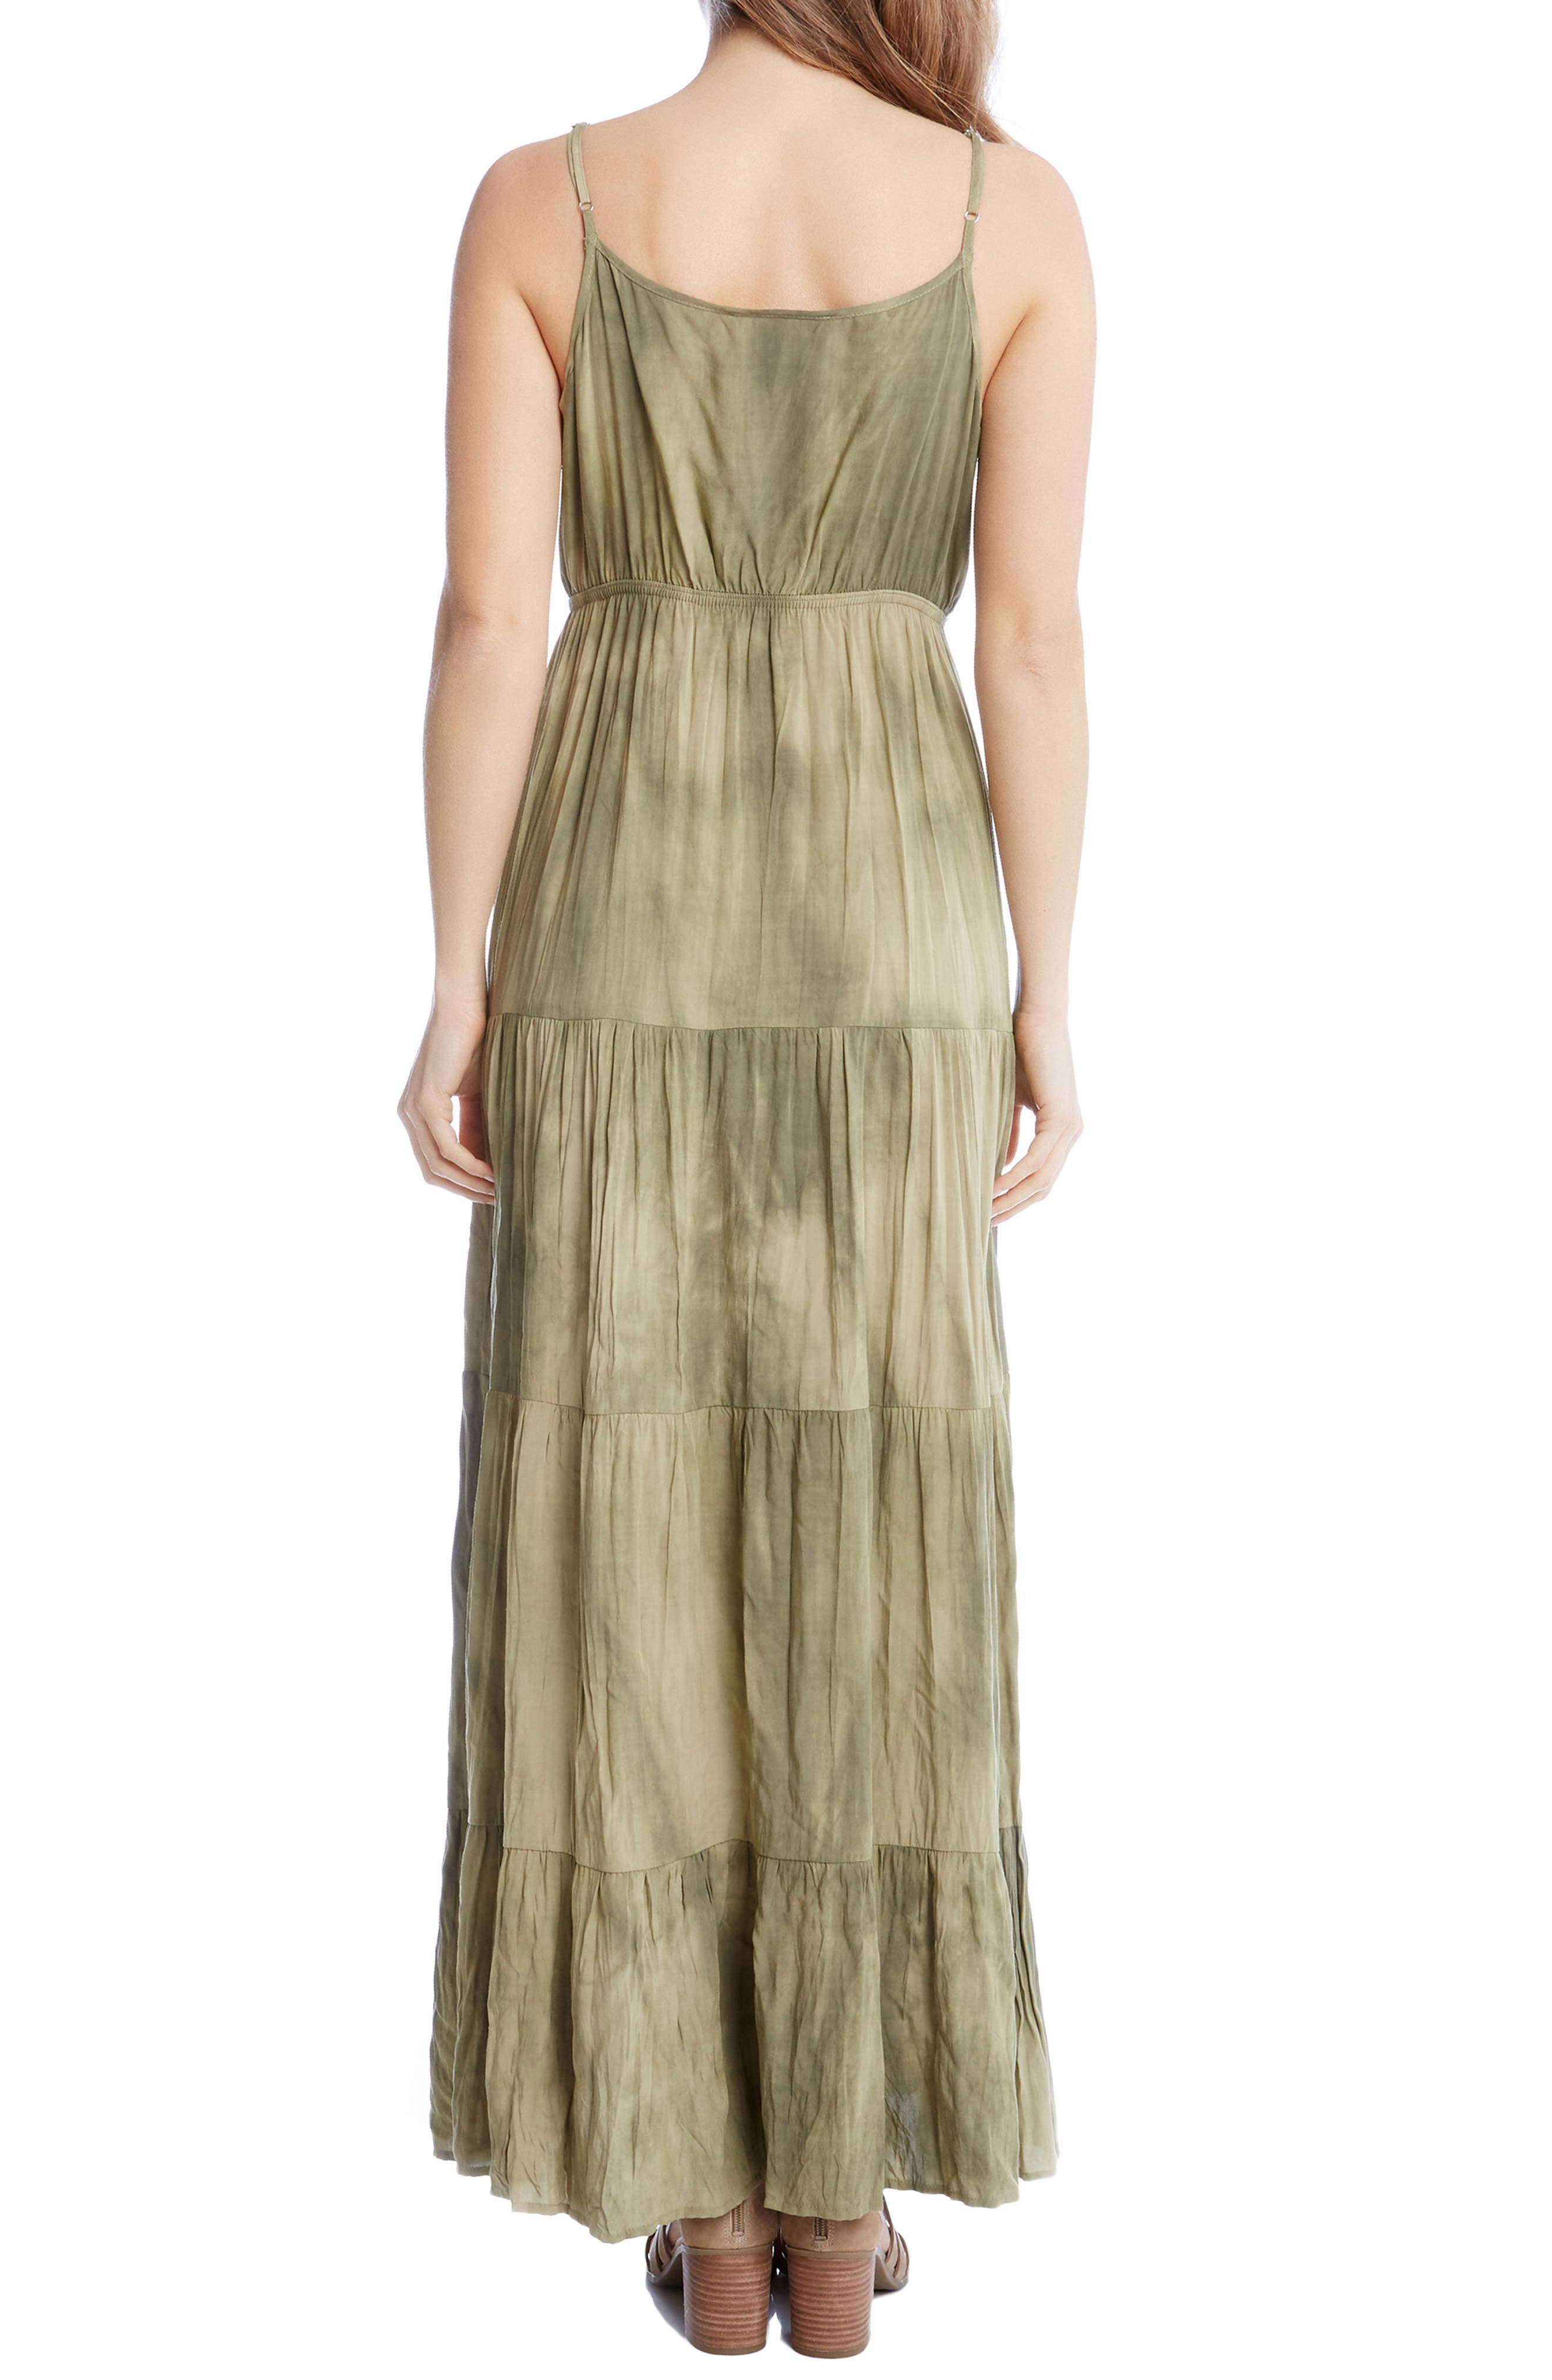 Tiered Maxi Dress,                             Alternate thumbnail 3, color,                             Tie Dye